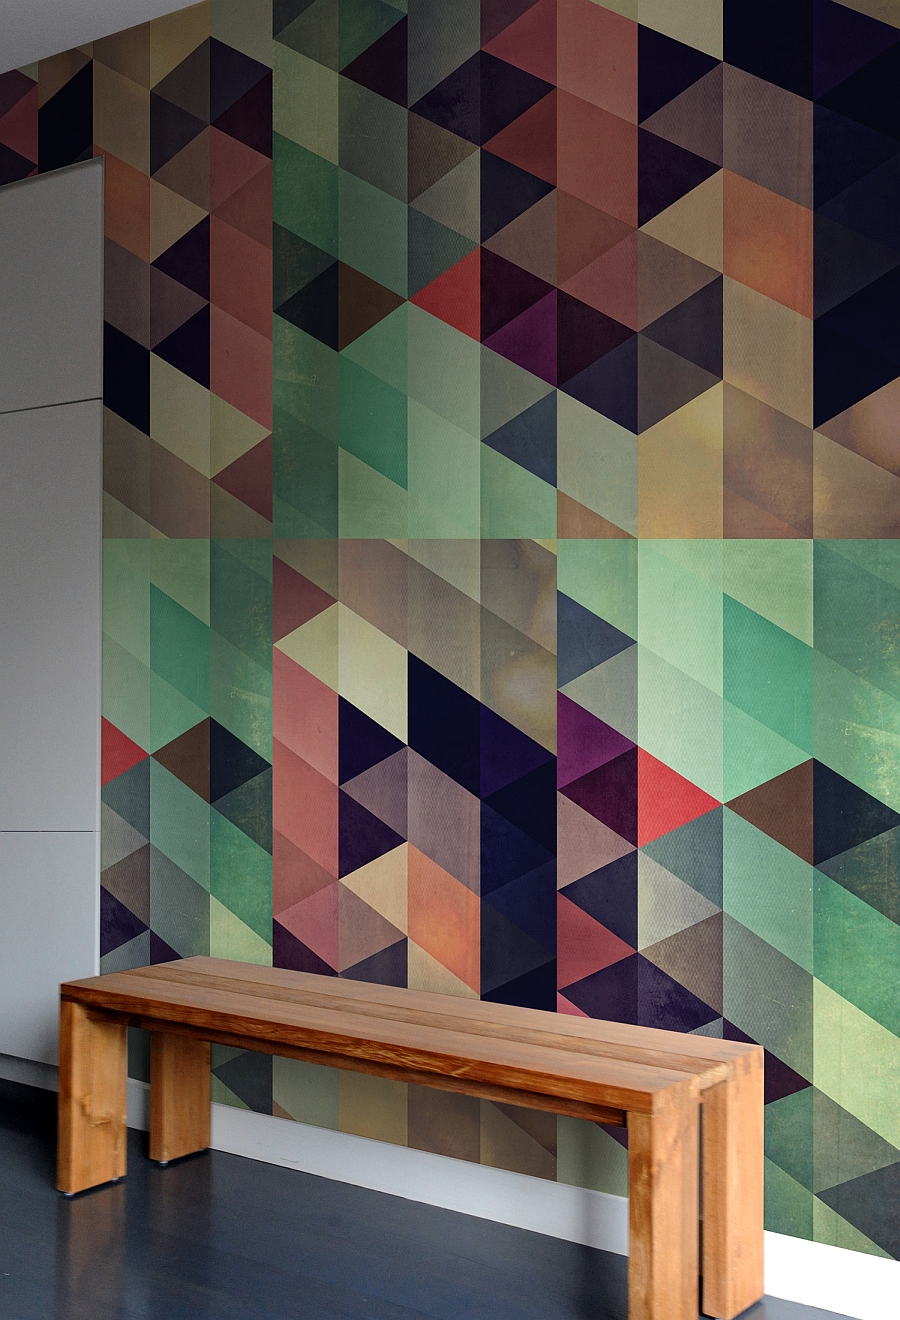 Creative and colorful wall tile designs